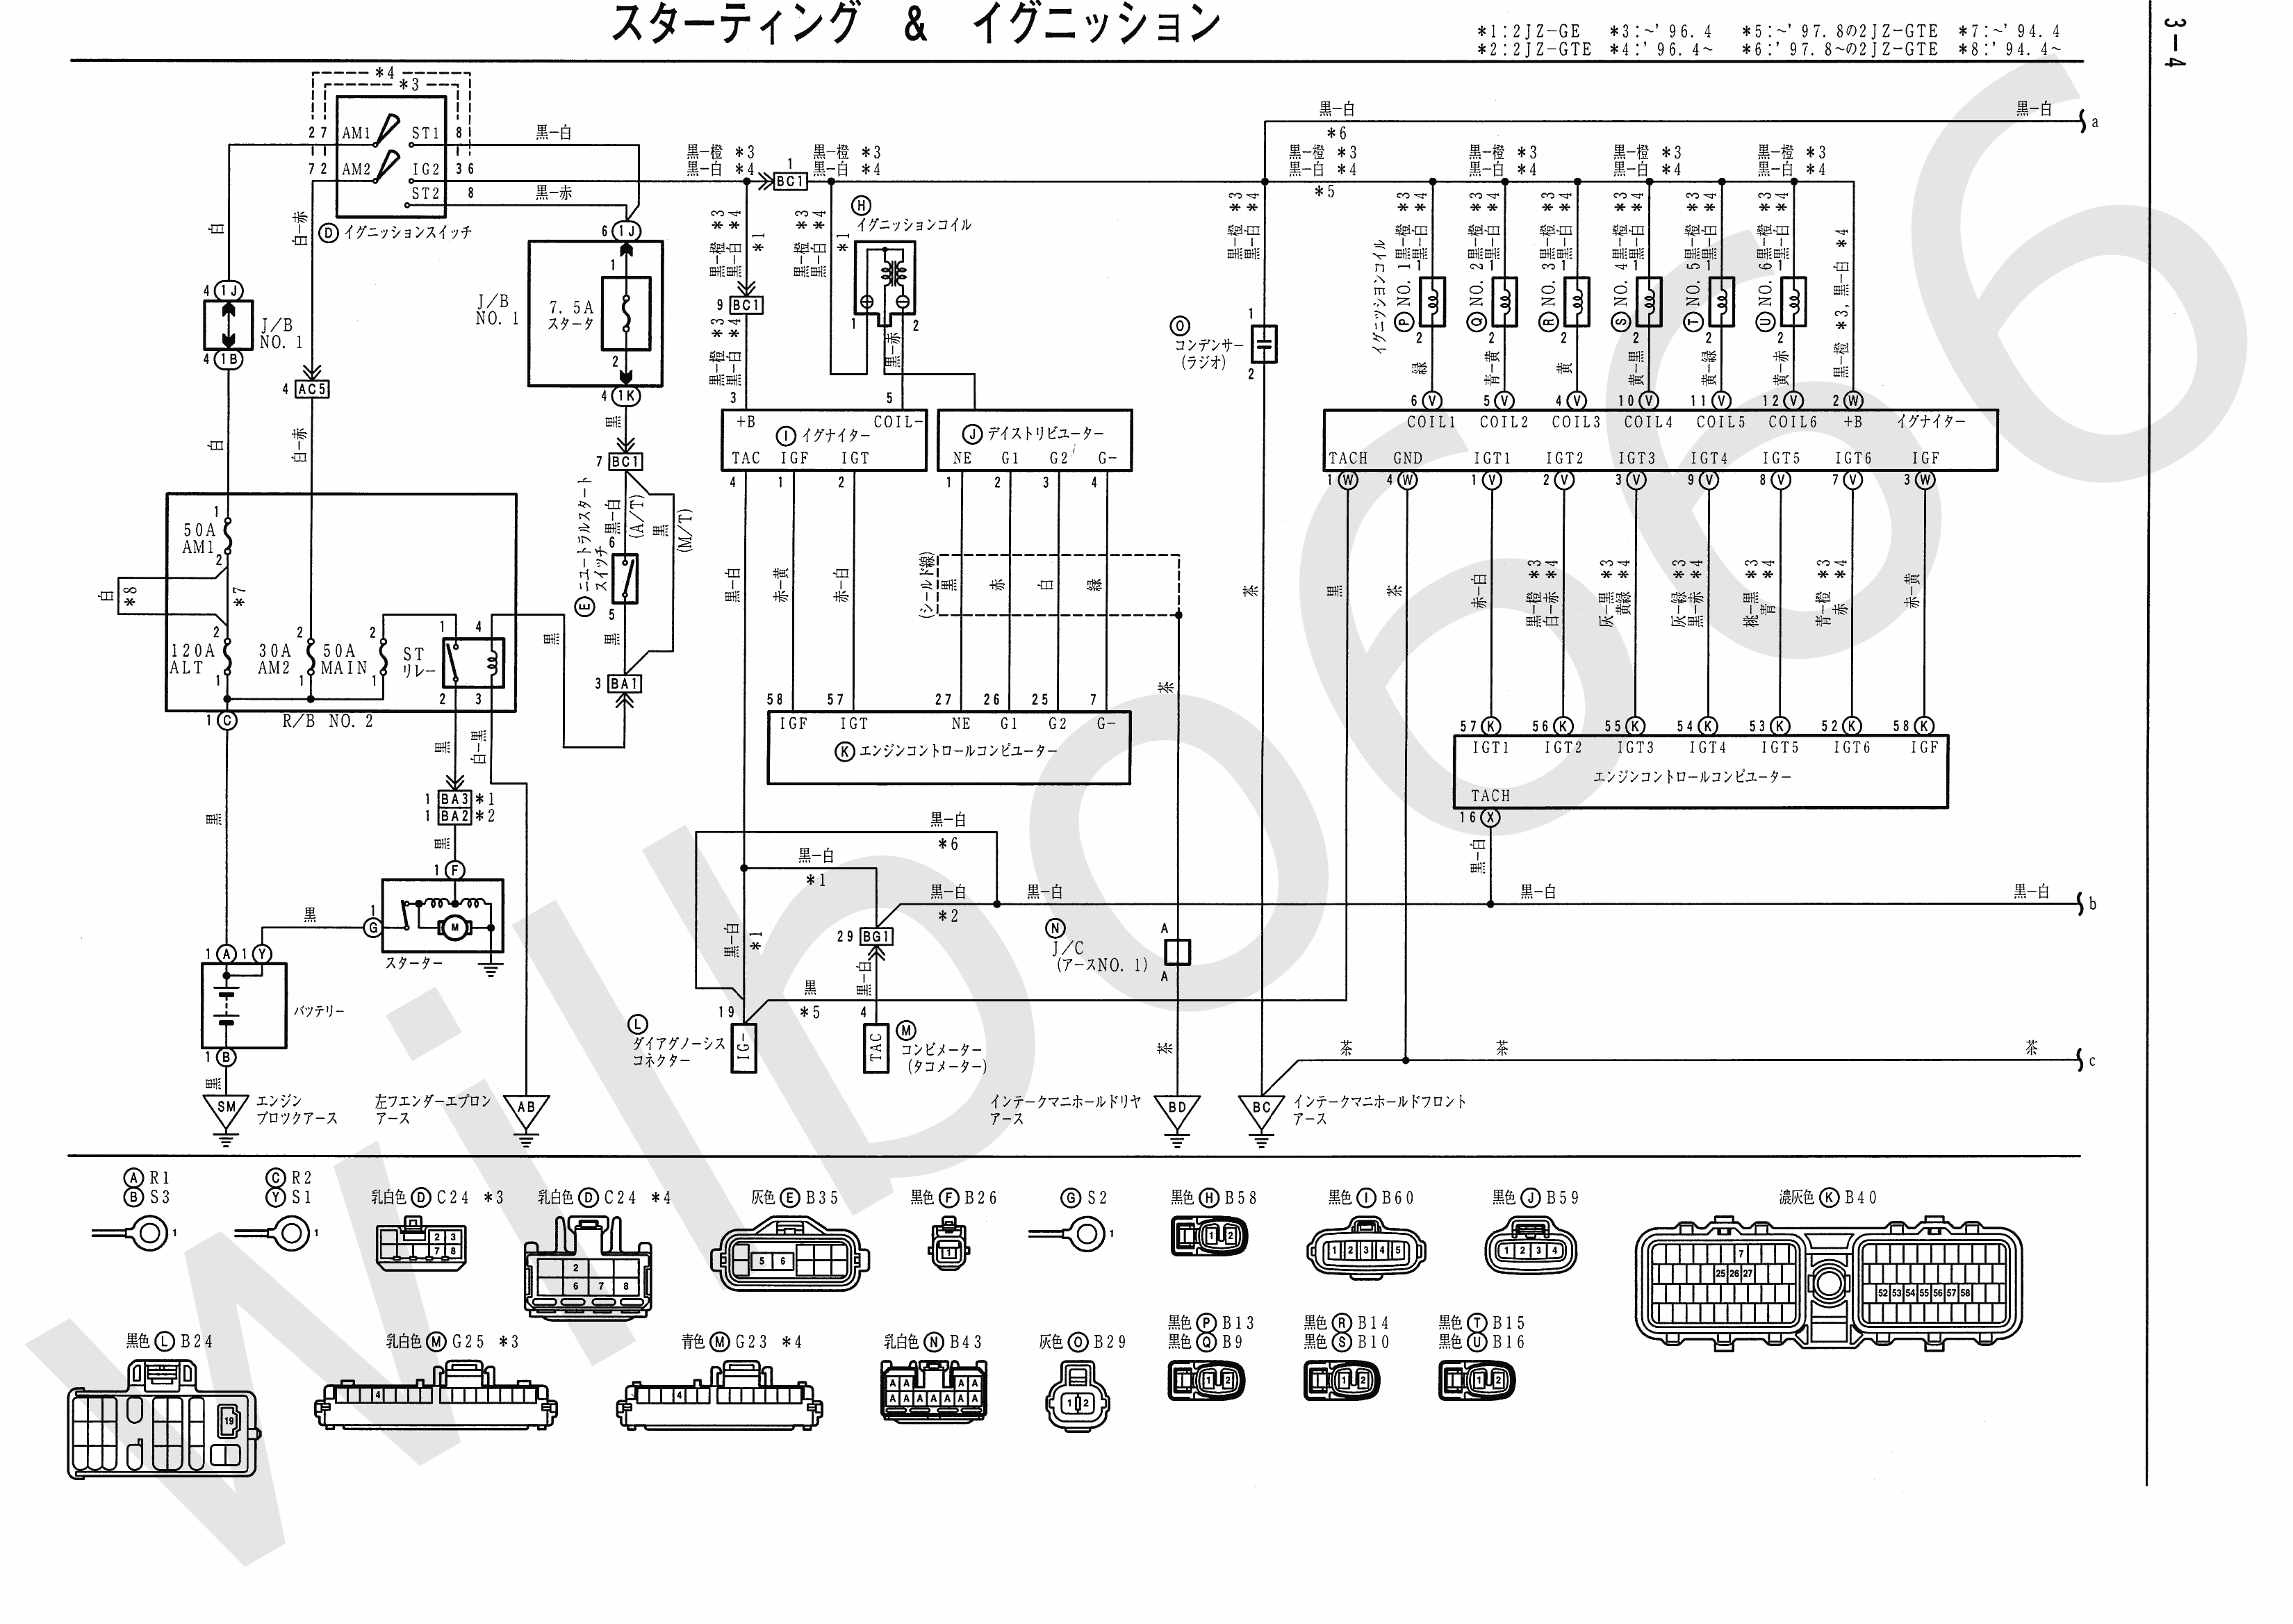 Abs Wiring Harness Diagram Quick Start Guide Of 2001 Toyota 1jz Wire Library Rh 19 Sekten Kritik De 06 Kia Sportage Starter 15773652 Location